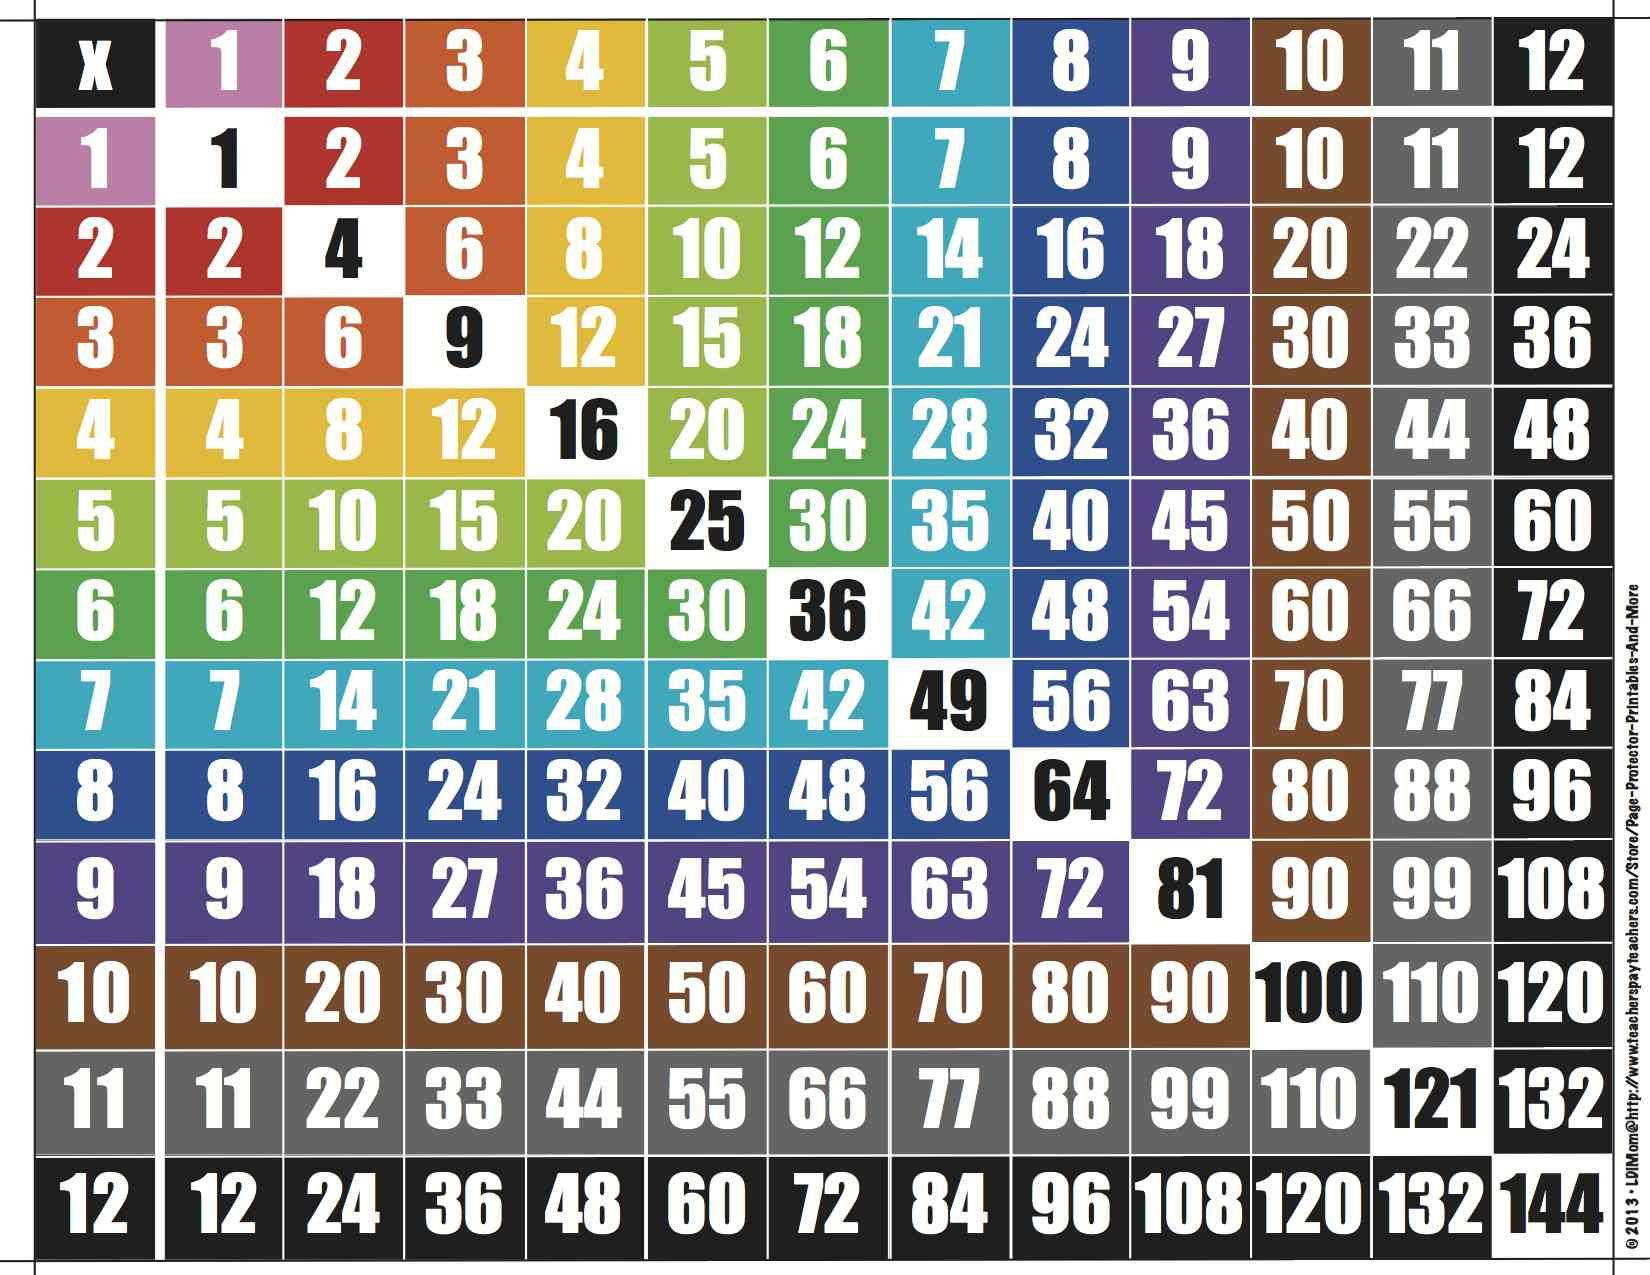 Multiplication Charts In 5 Formats To 12 X 12 Full Color Ink Saving Color And B W Versions Multiplication Chart Multiplication Math Instruction